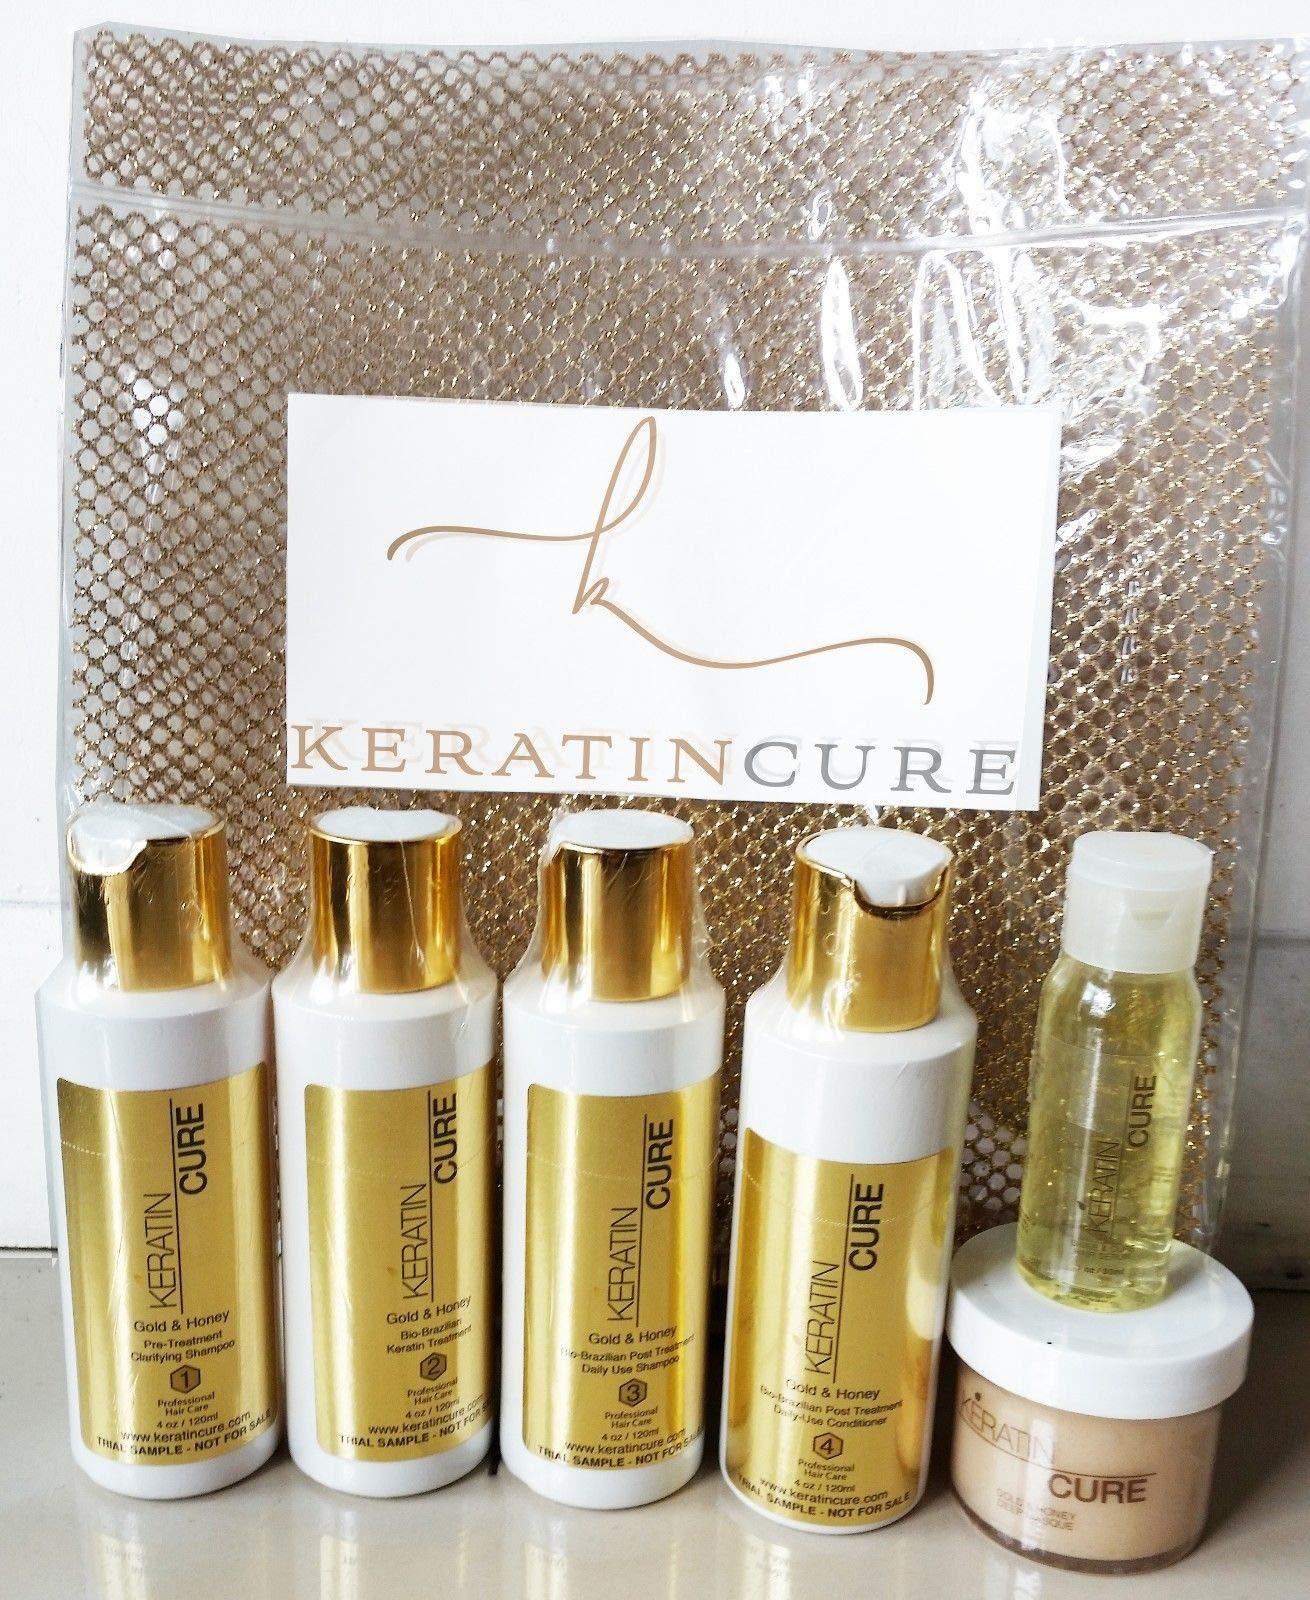 Keratin Cure Best Treatment Gold and Honey Bio Protein Silky Soft Formaldehyde Free Complex with Argan Oil Nourishing Straightening Damaged Dry Frizzy Kit 4 Kids, Men, Women Promo Kit 4 oz